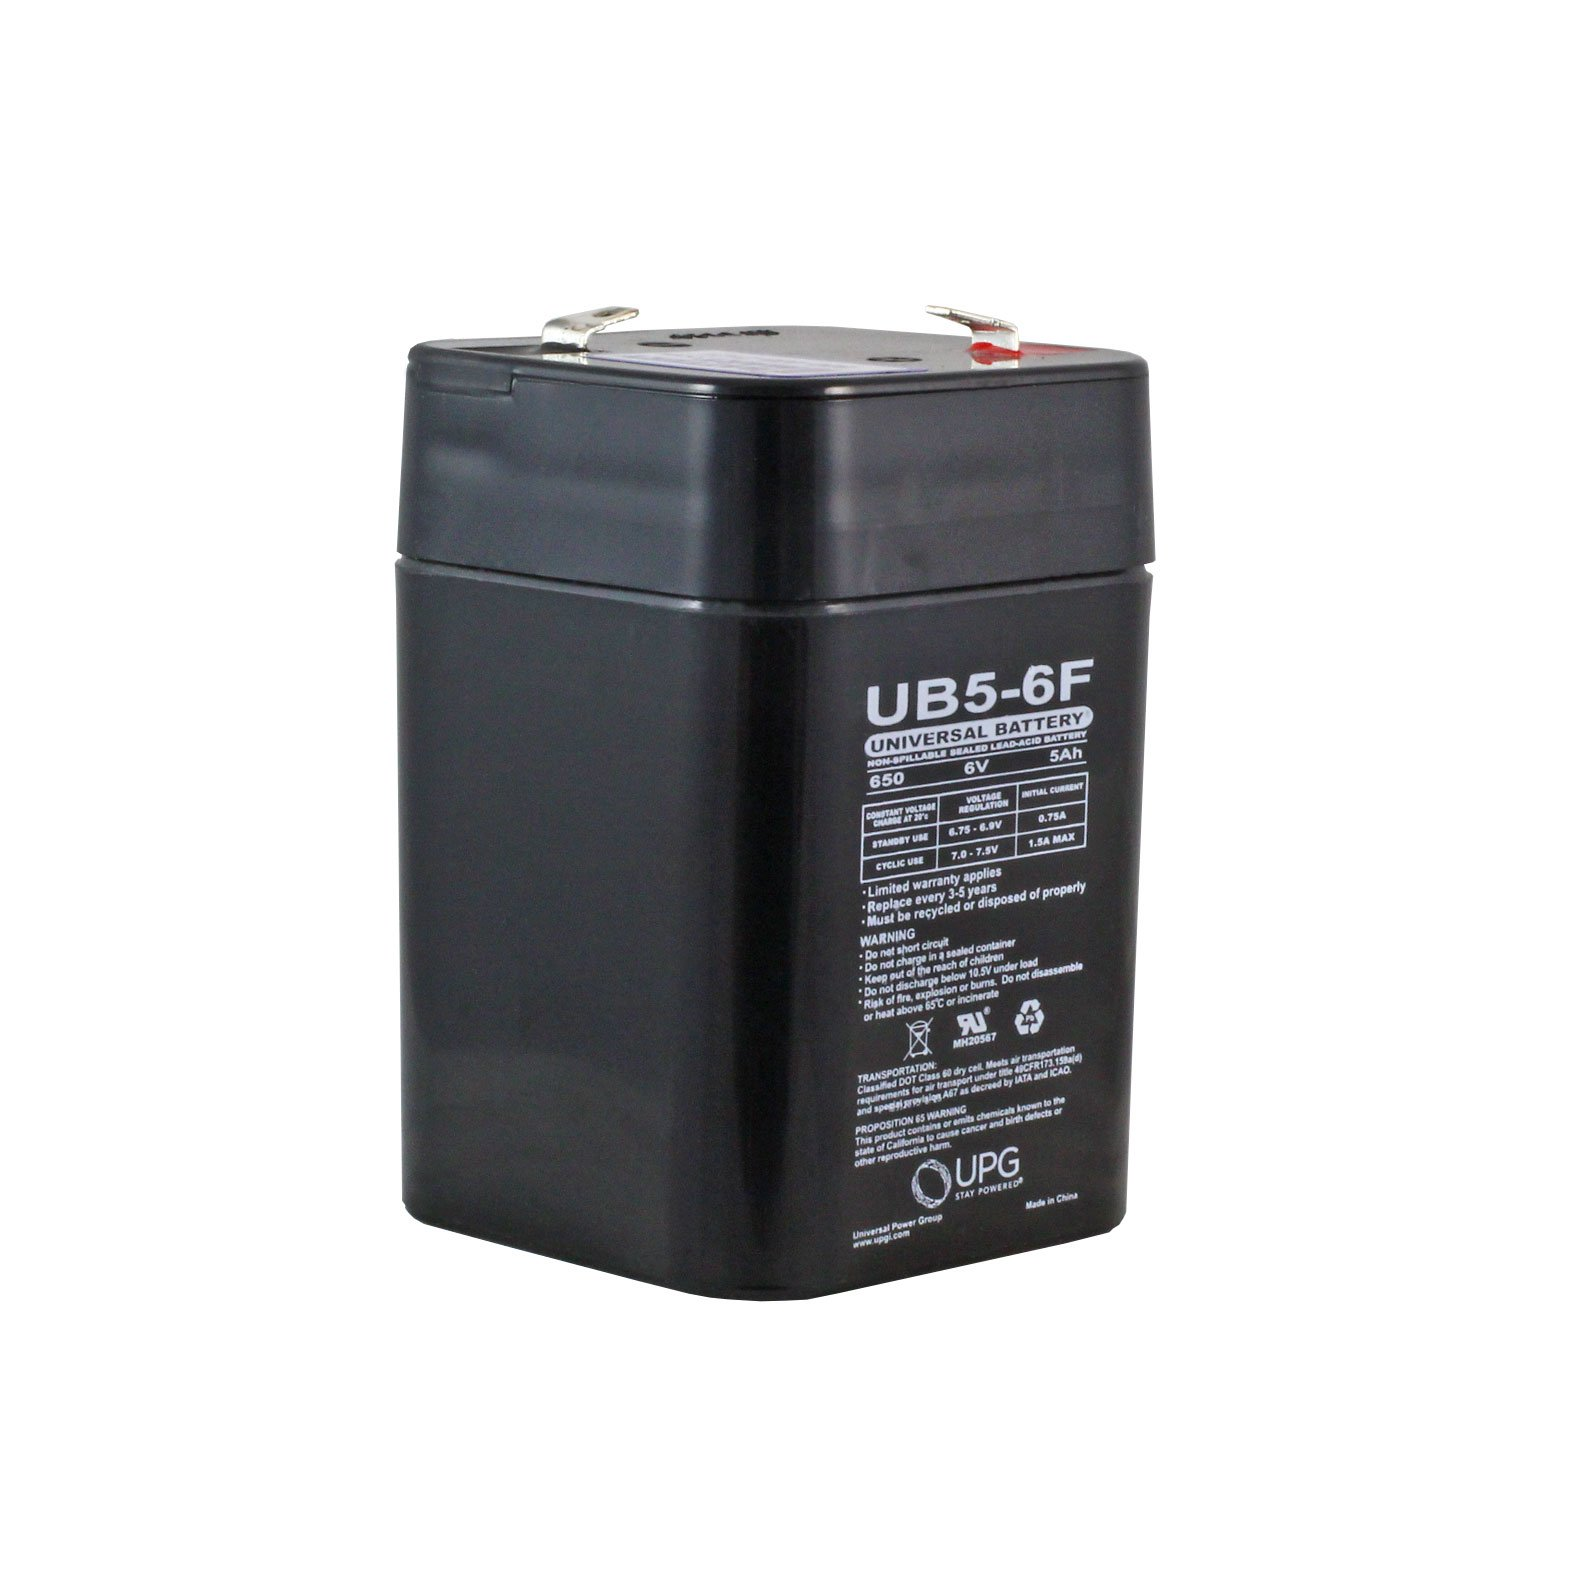 6 volt 5 ah sealed lead acid rechargeable battery with f1. Black Bedroom Furniture Sets. Home Design Ideas